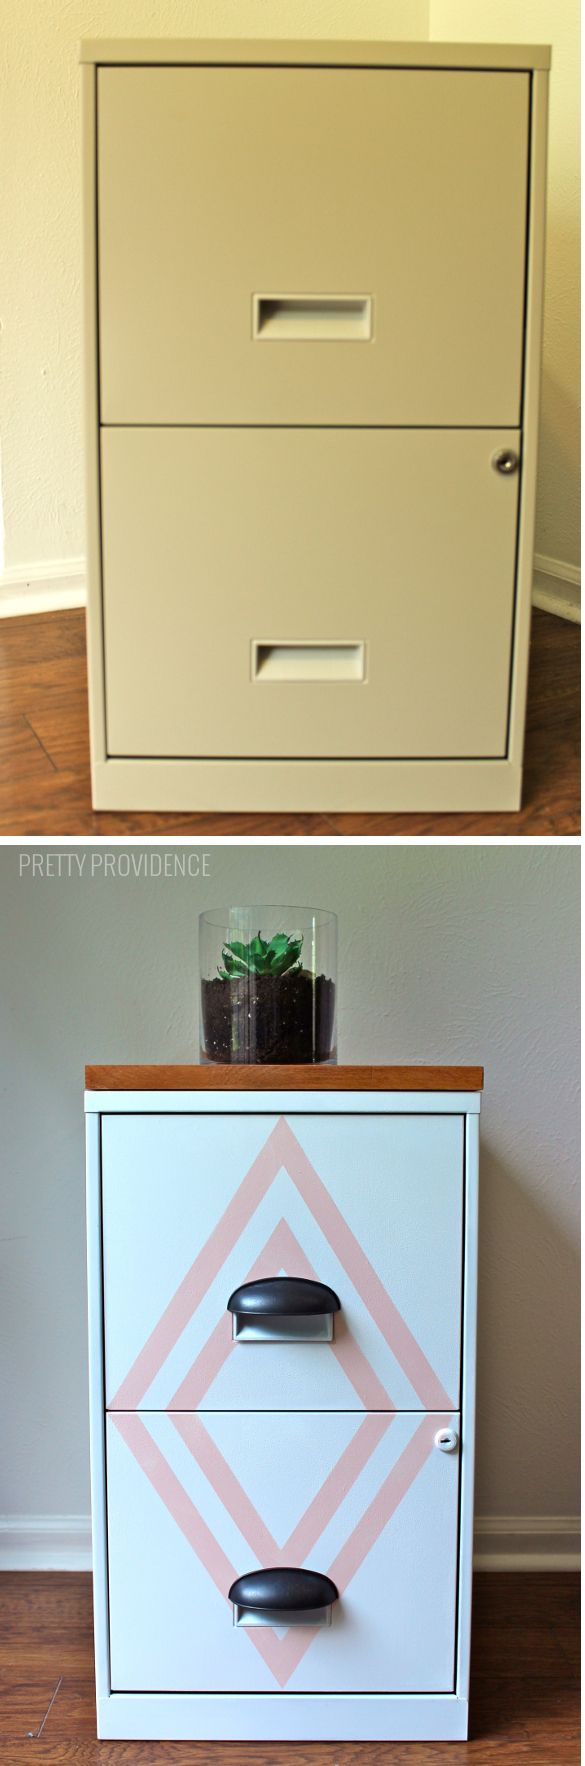 Best 25+ Cabinet top decorating ideas on Pinterest | Top of cabinet decor,  Home improvement and Spray paint projects